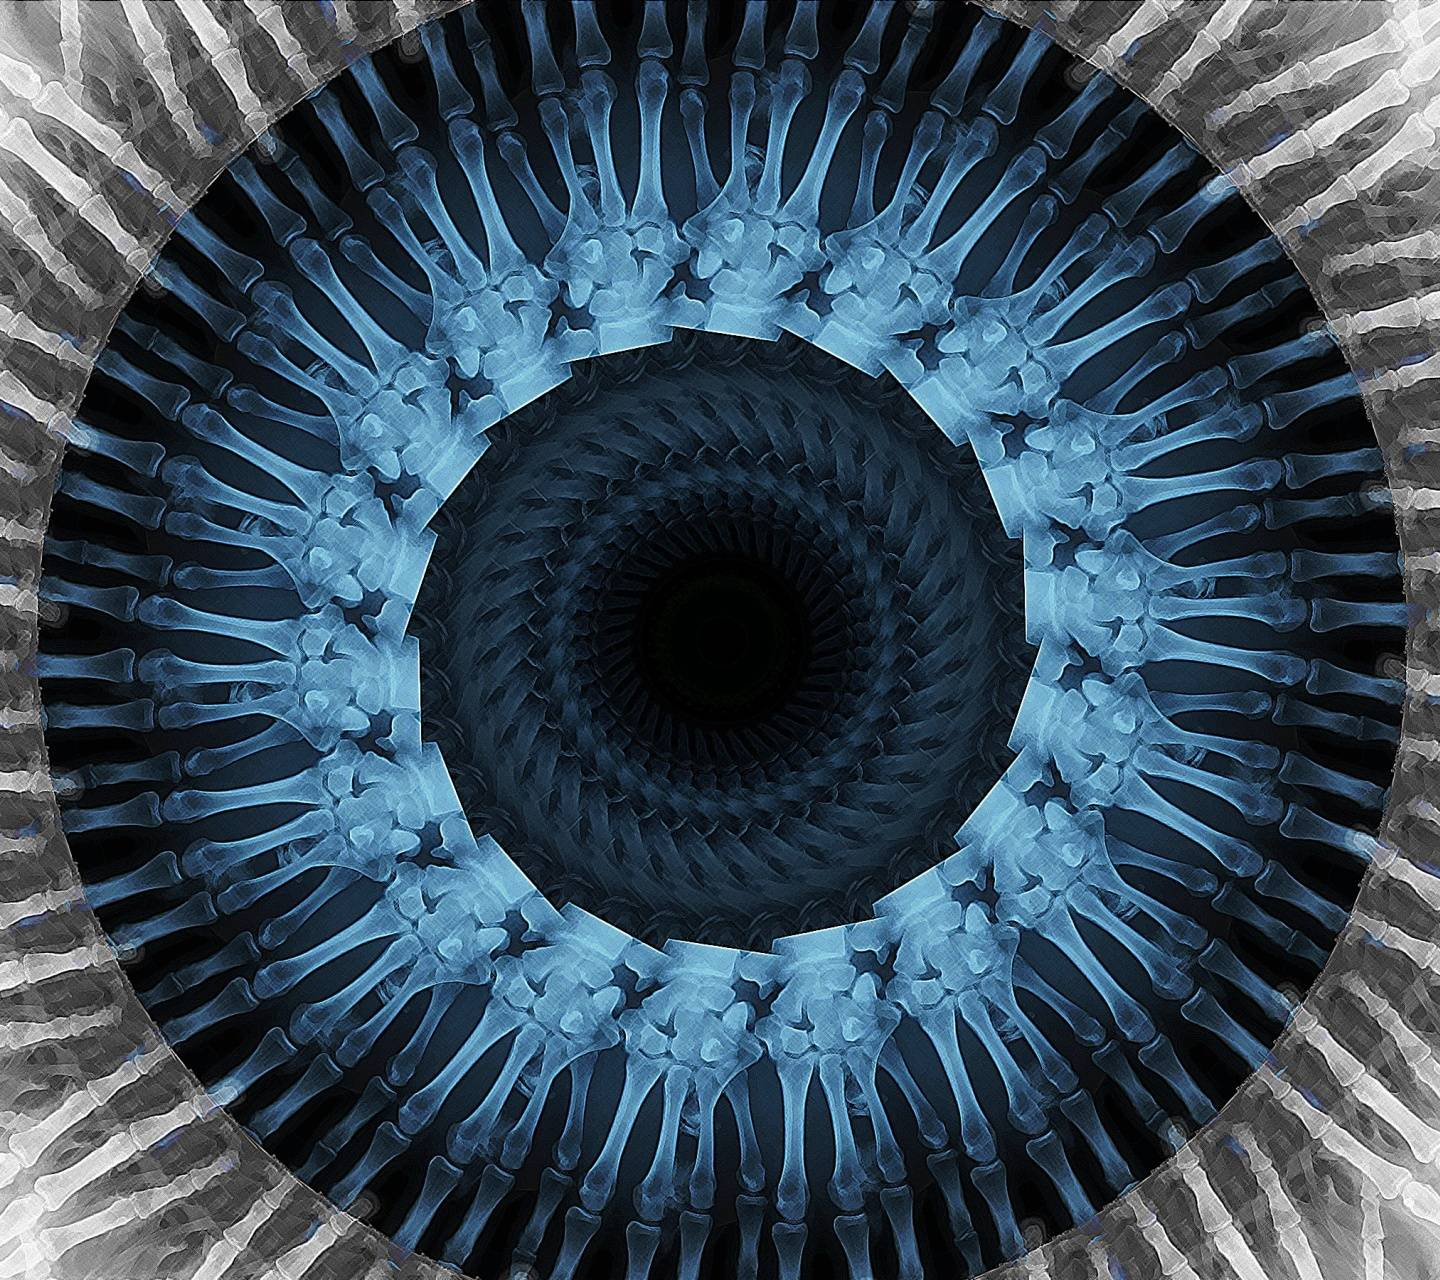 X Rayed Eye